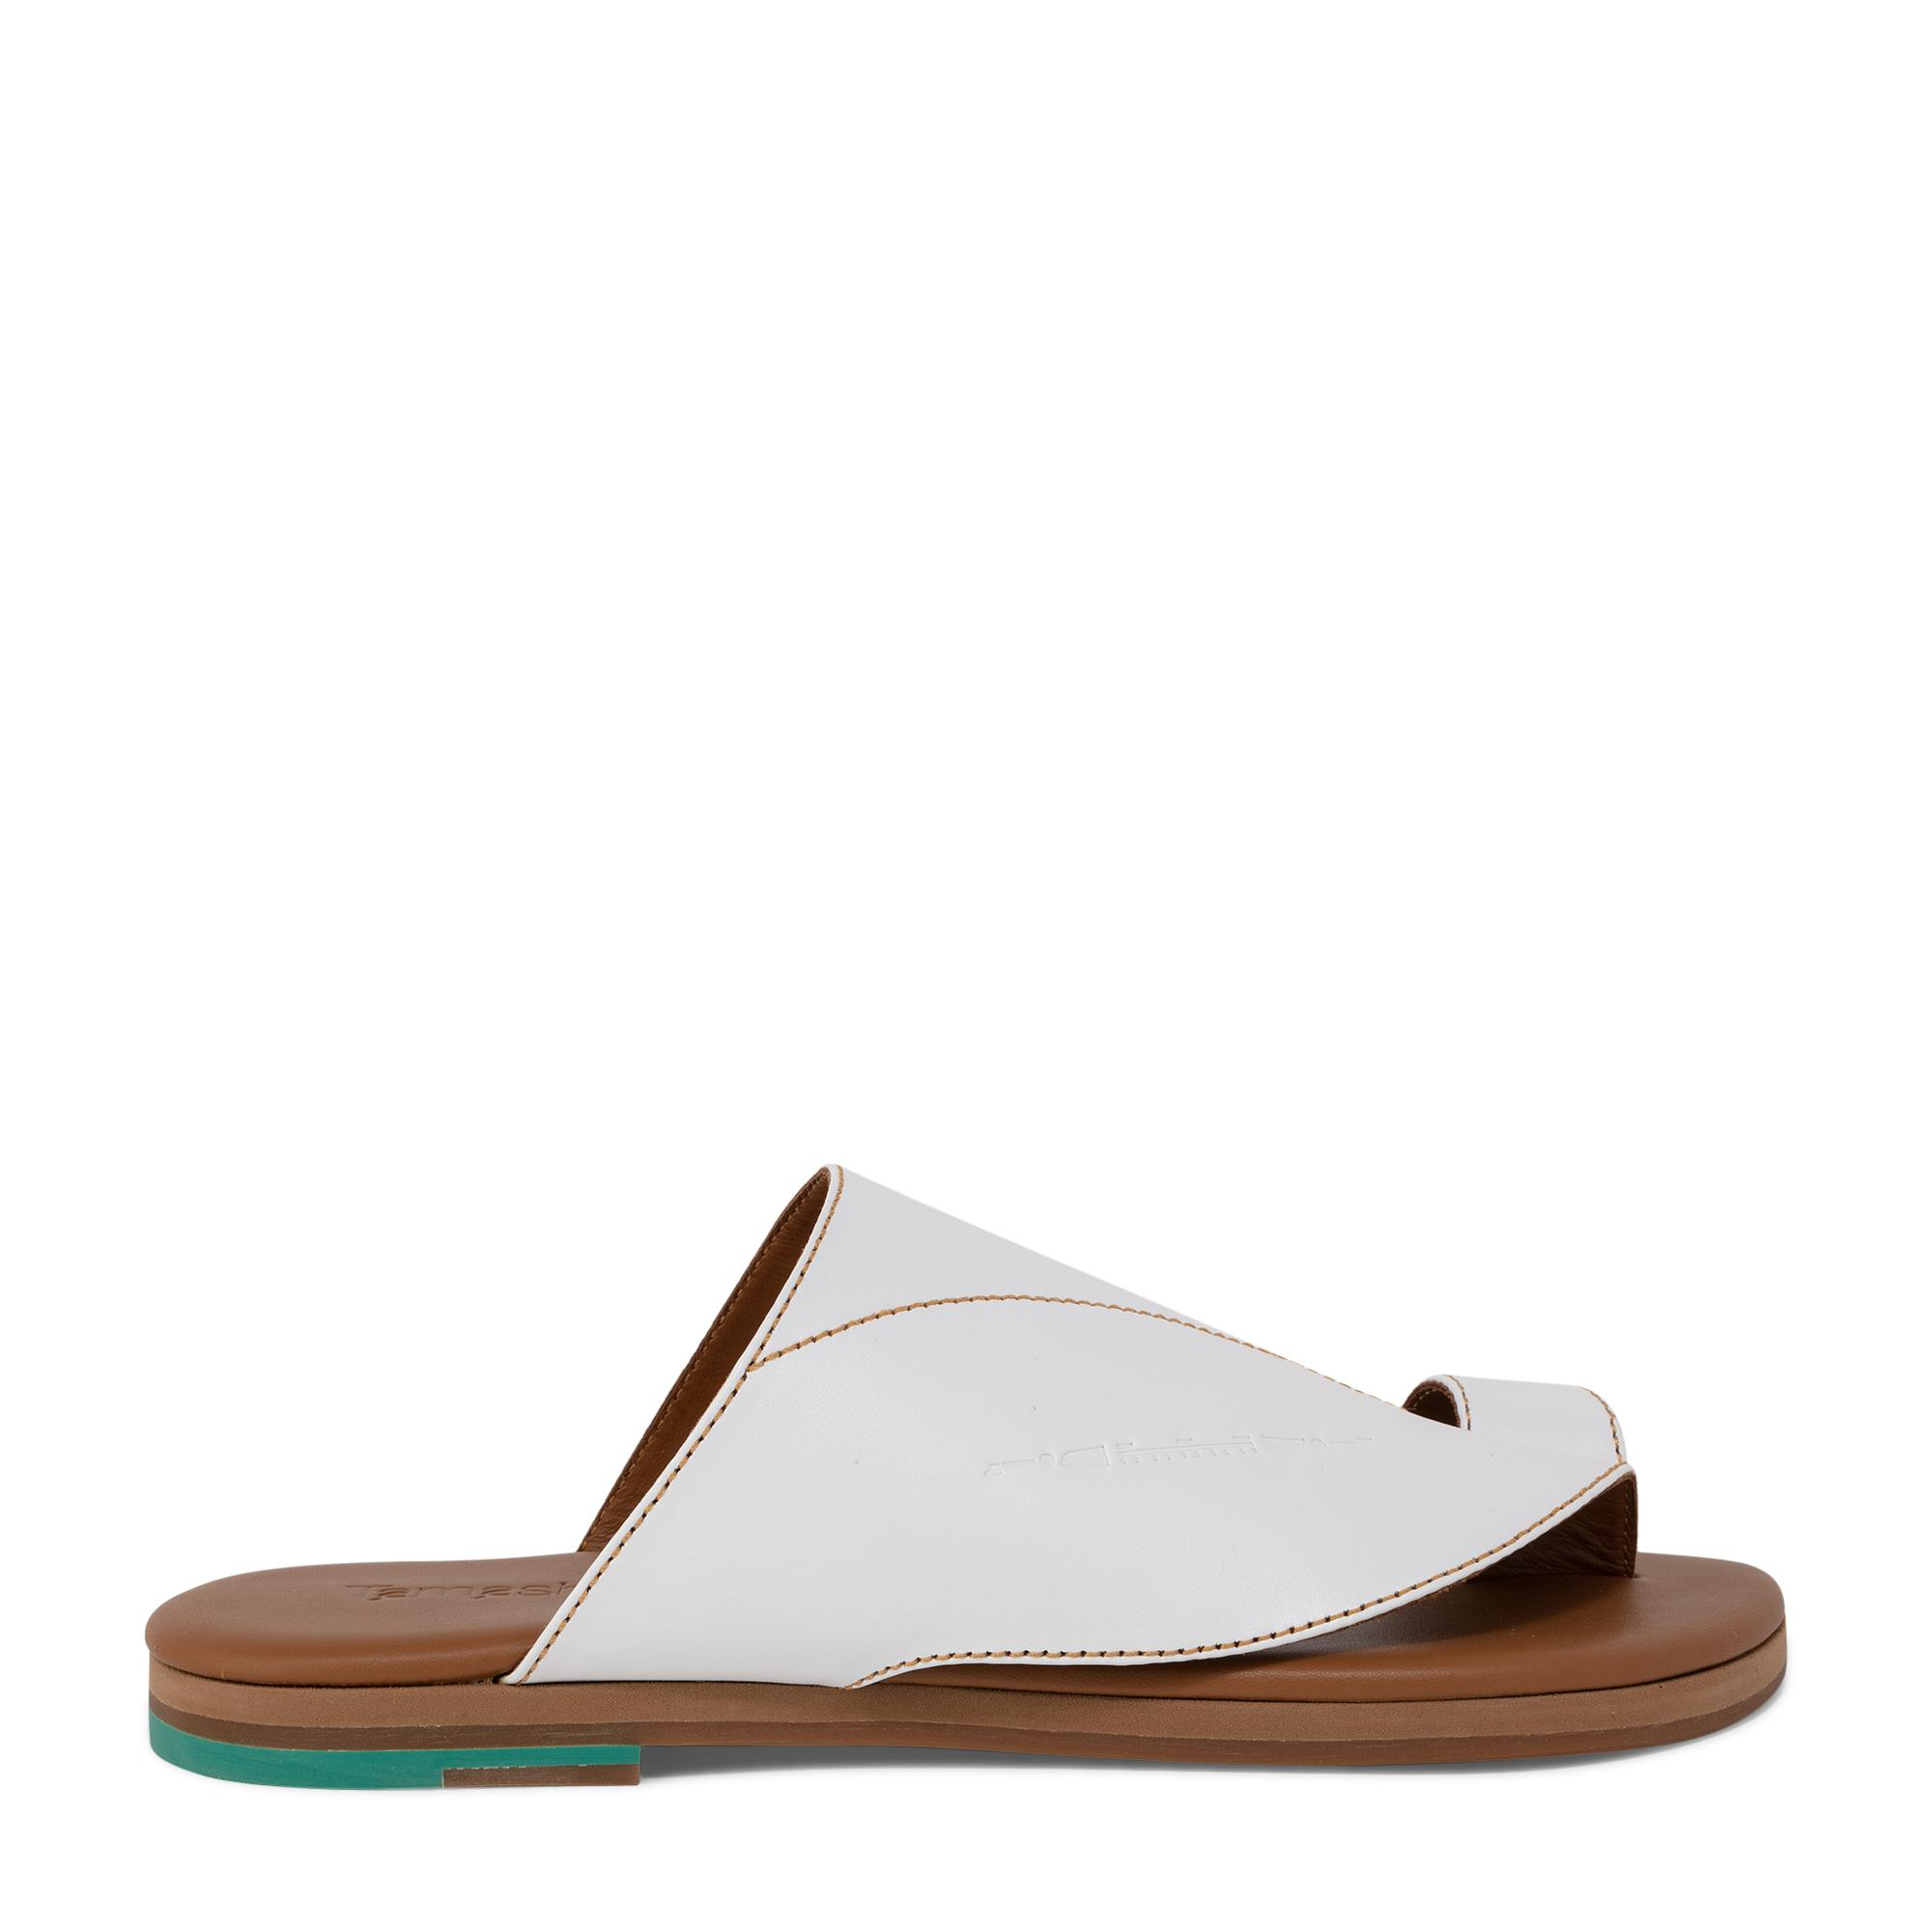 Gallaaby sandals